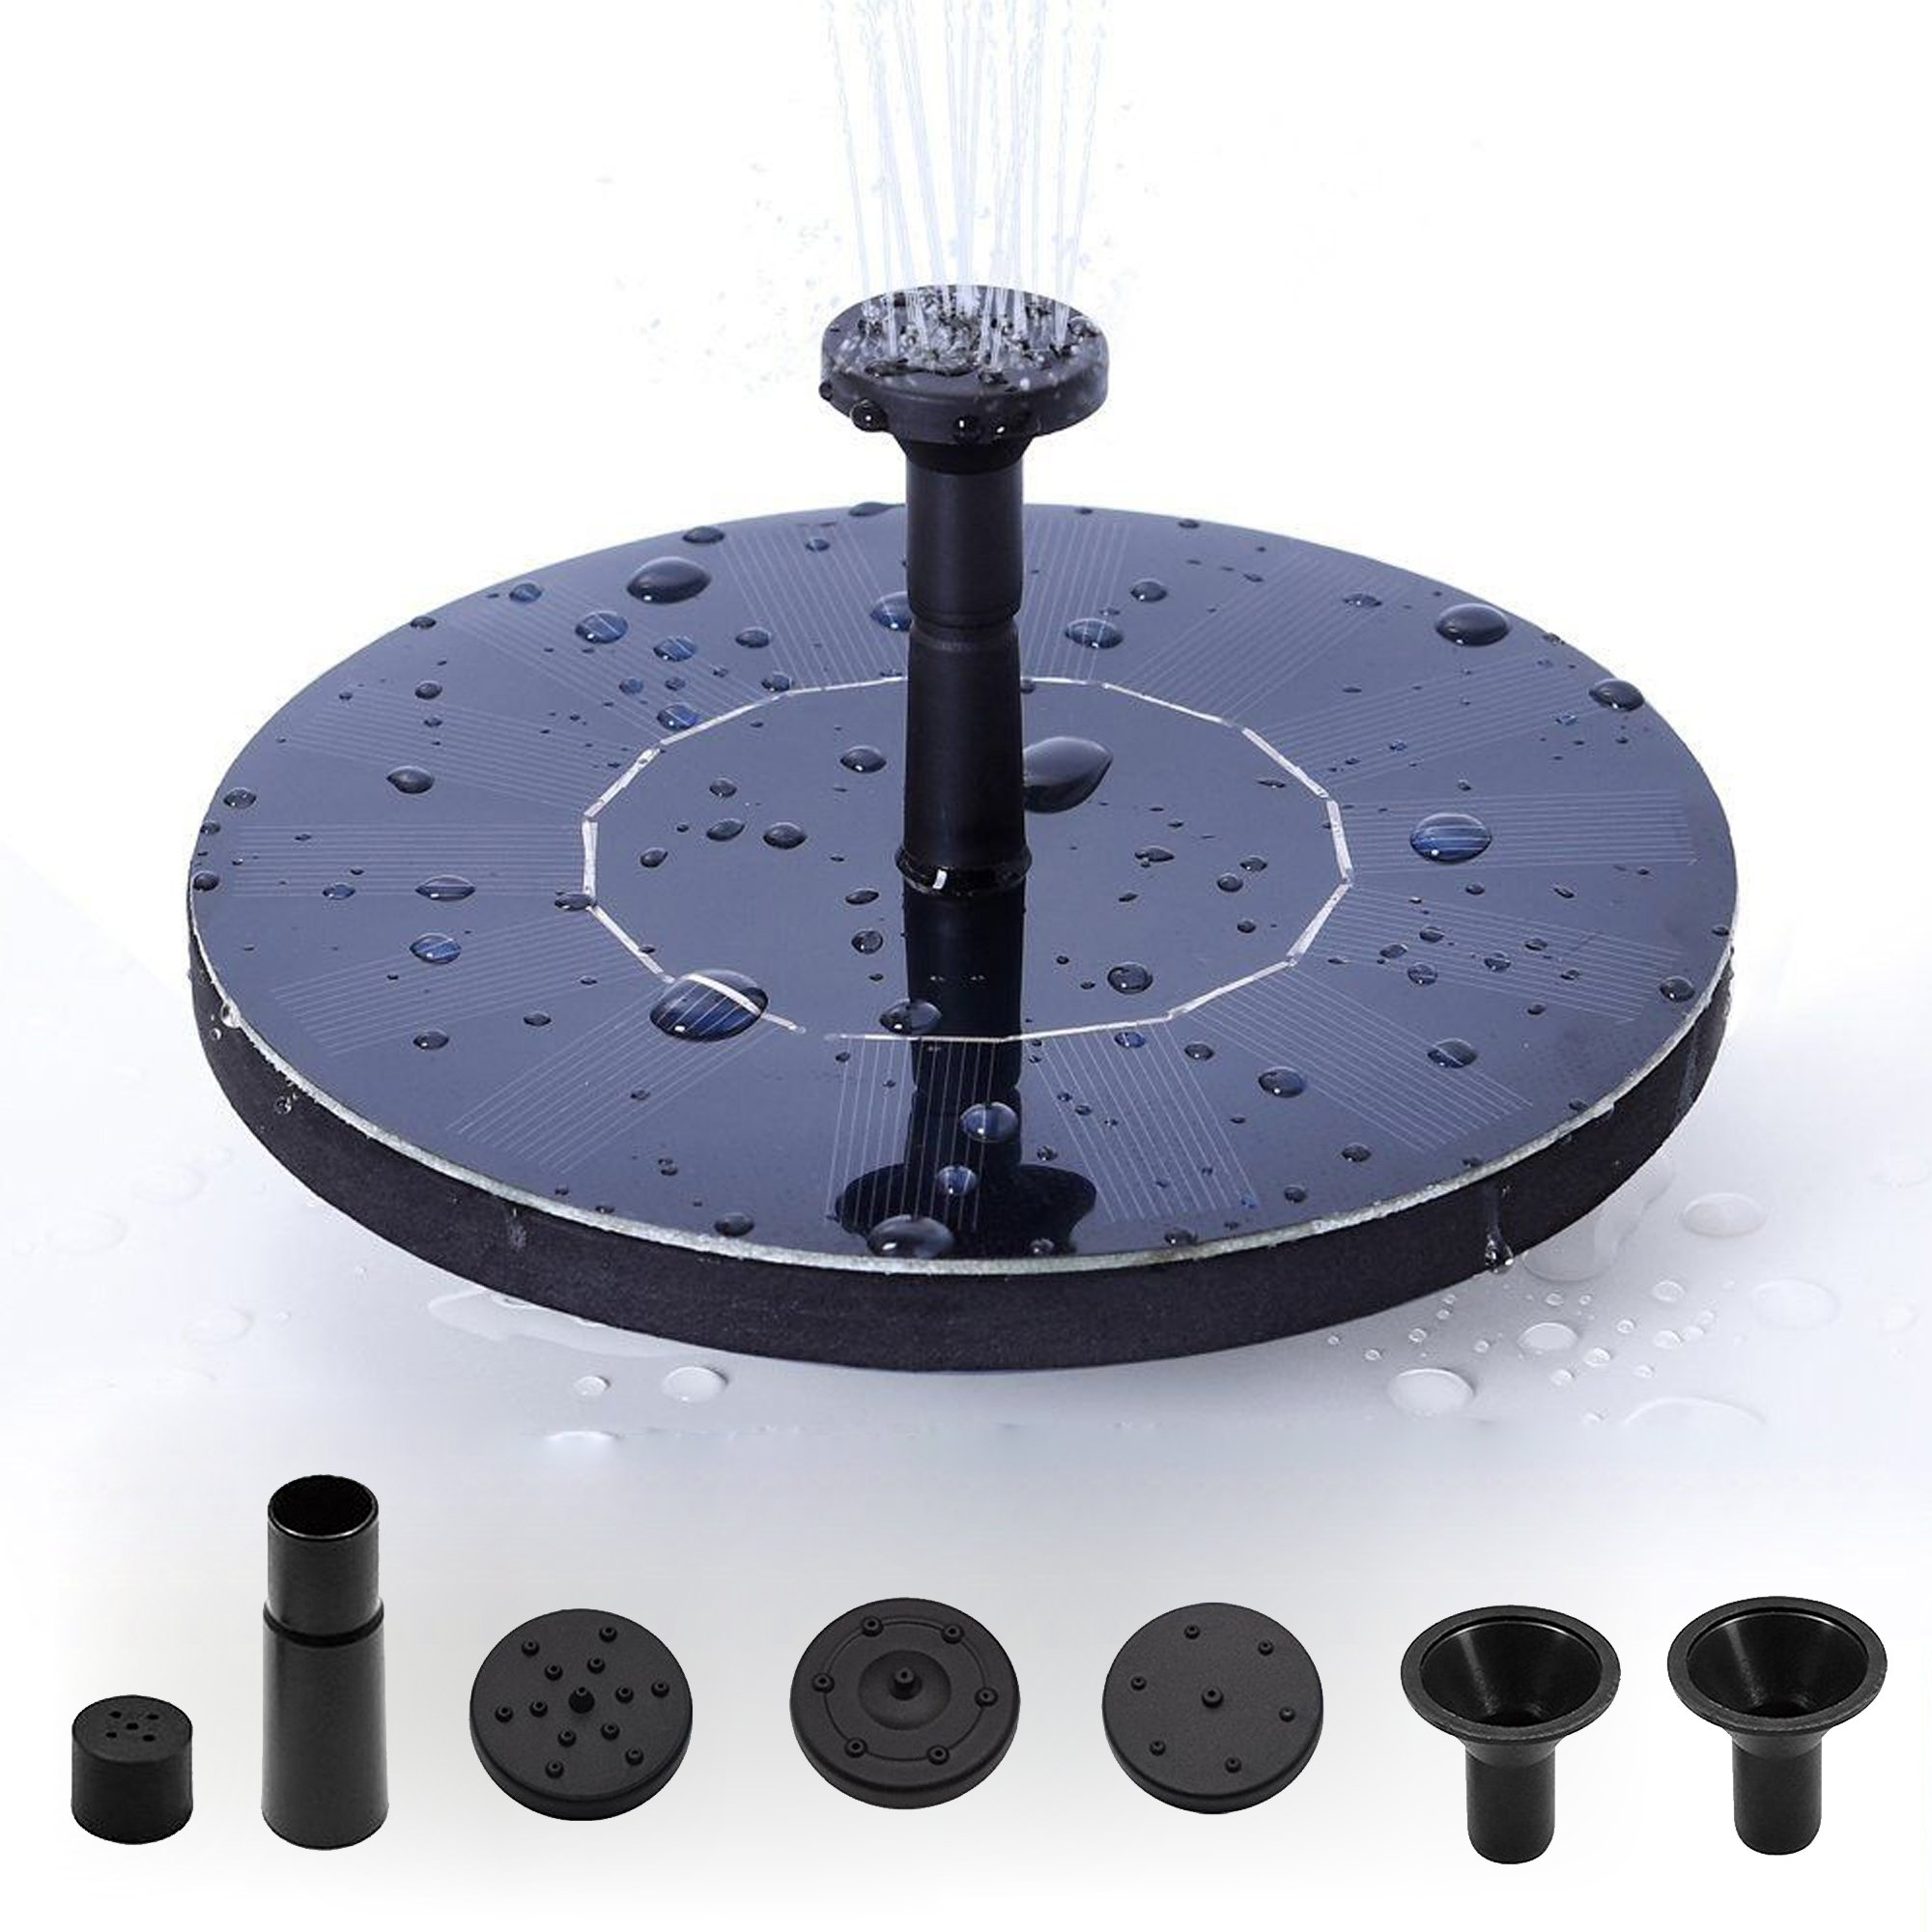 Solar Panel Water Floating Pump Kit, Brushless Solar Powered Water Pump Fountain Pond, Floating Solar Bird Bath, Self-Powered Pond Fountain With Different Spray Heads for Pond, Pool, Garden